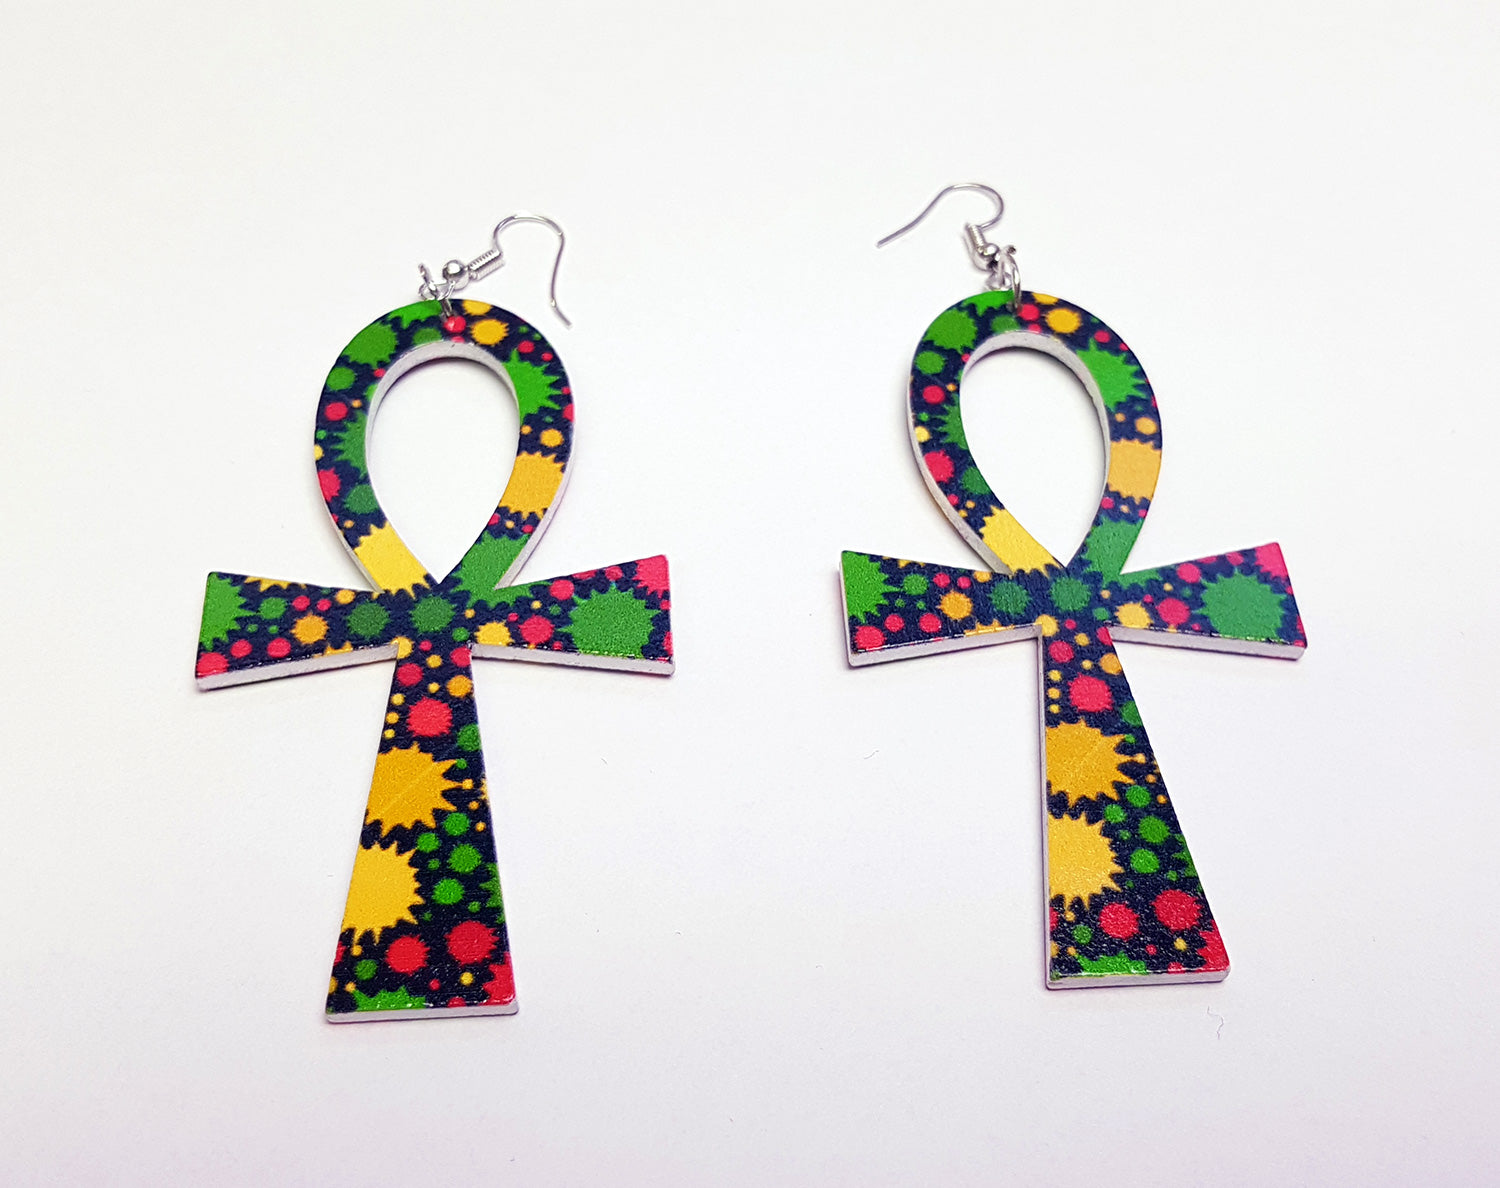 Ankh shaped wooden African Earrings with Print - Dots